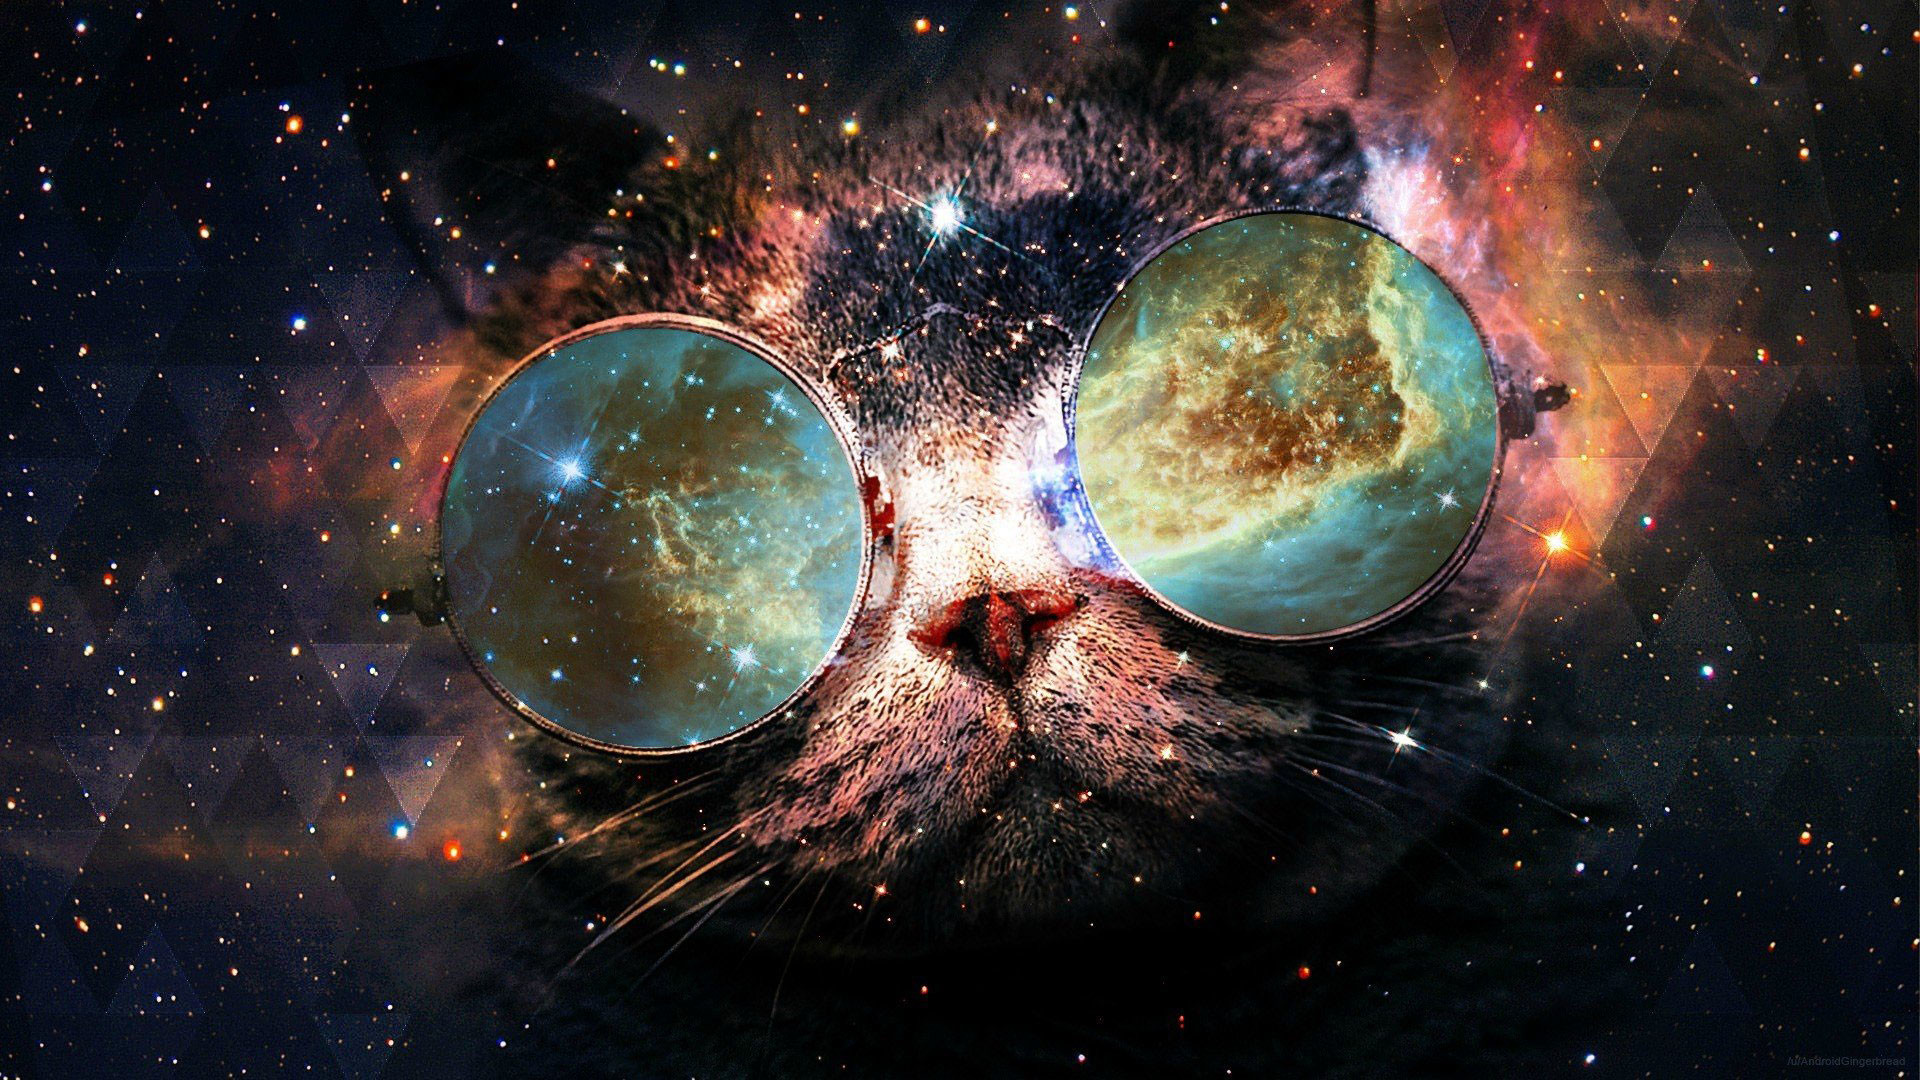 1920x1080 Backgrounds For Cat Galaxy 8backgrounds Com